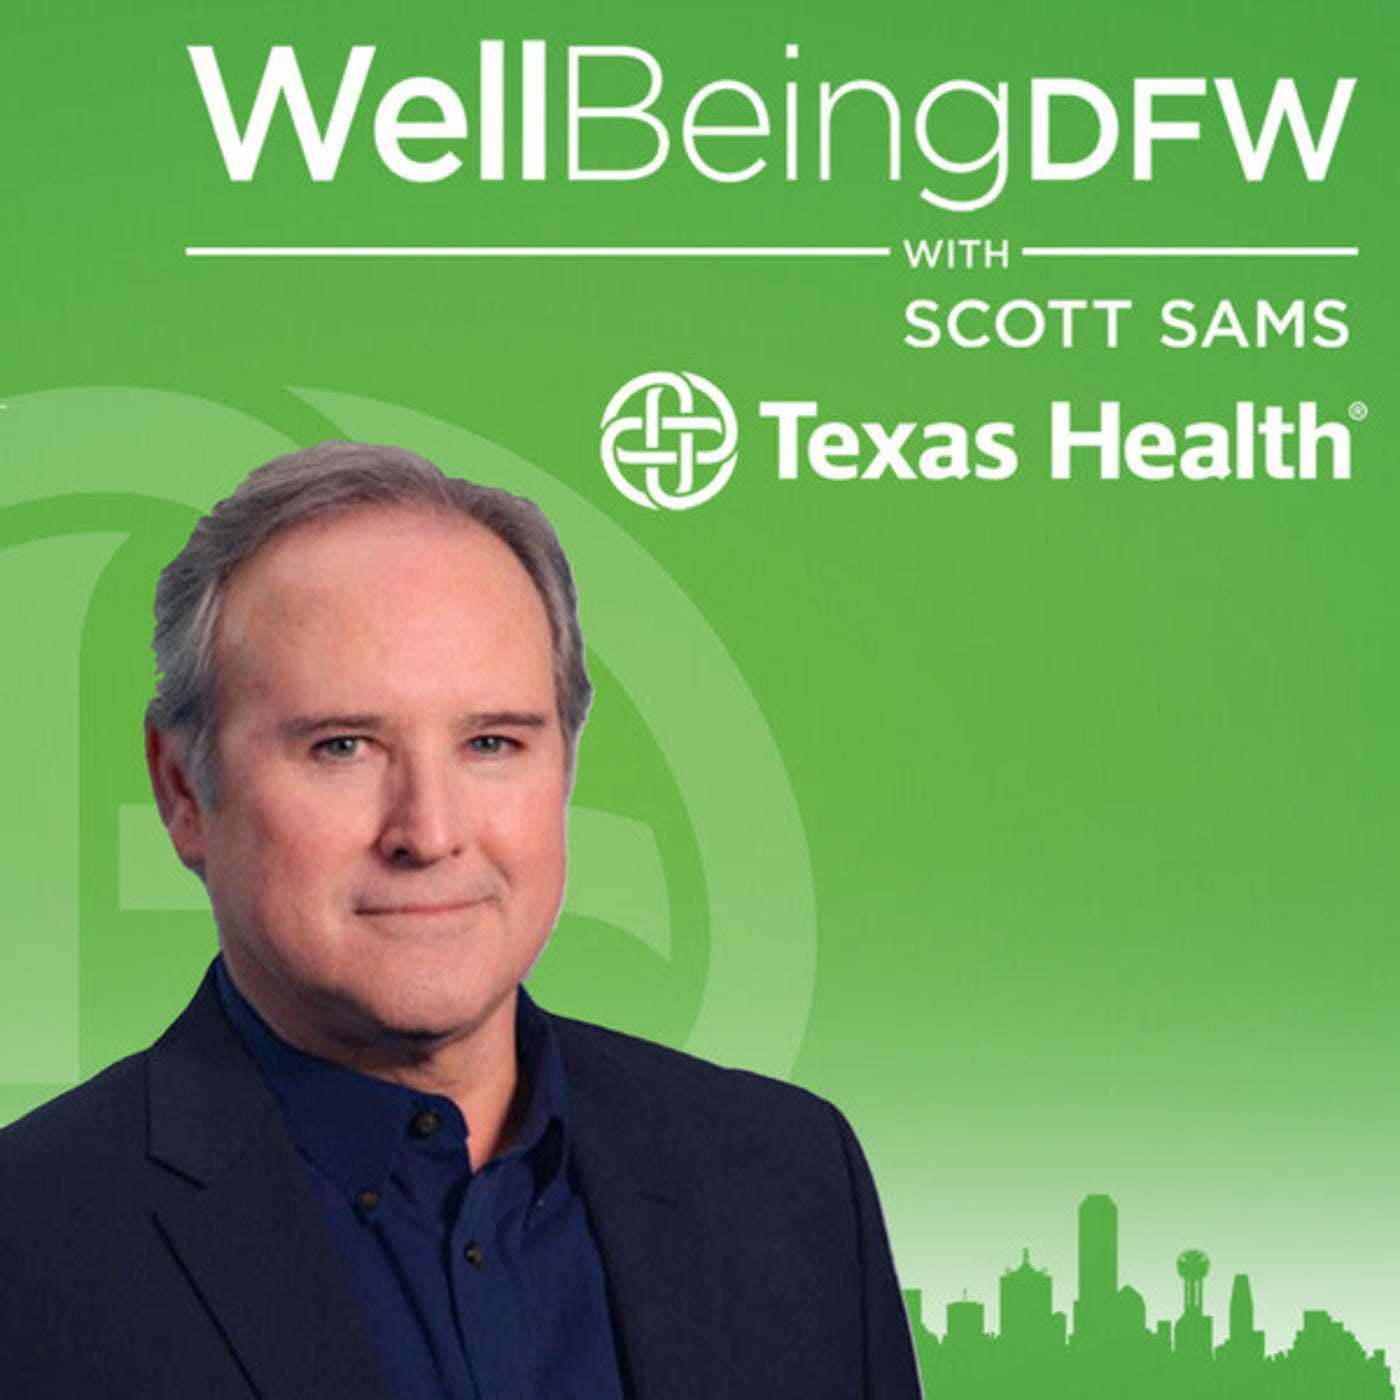 Well Being DFW